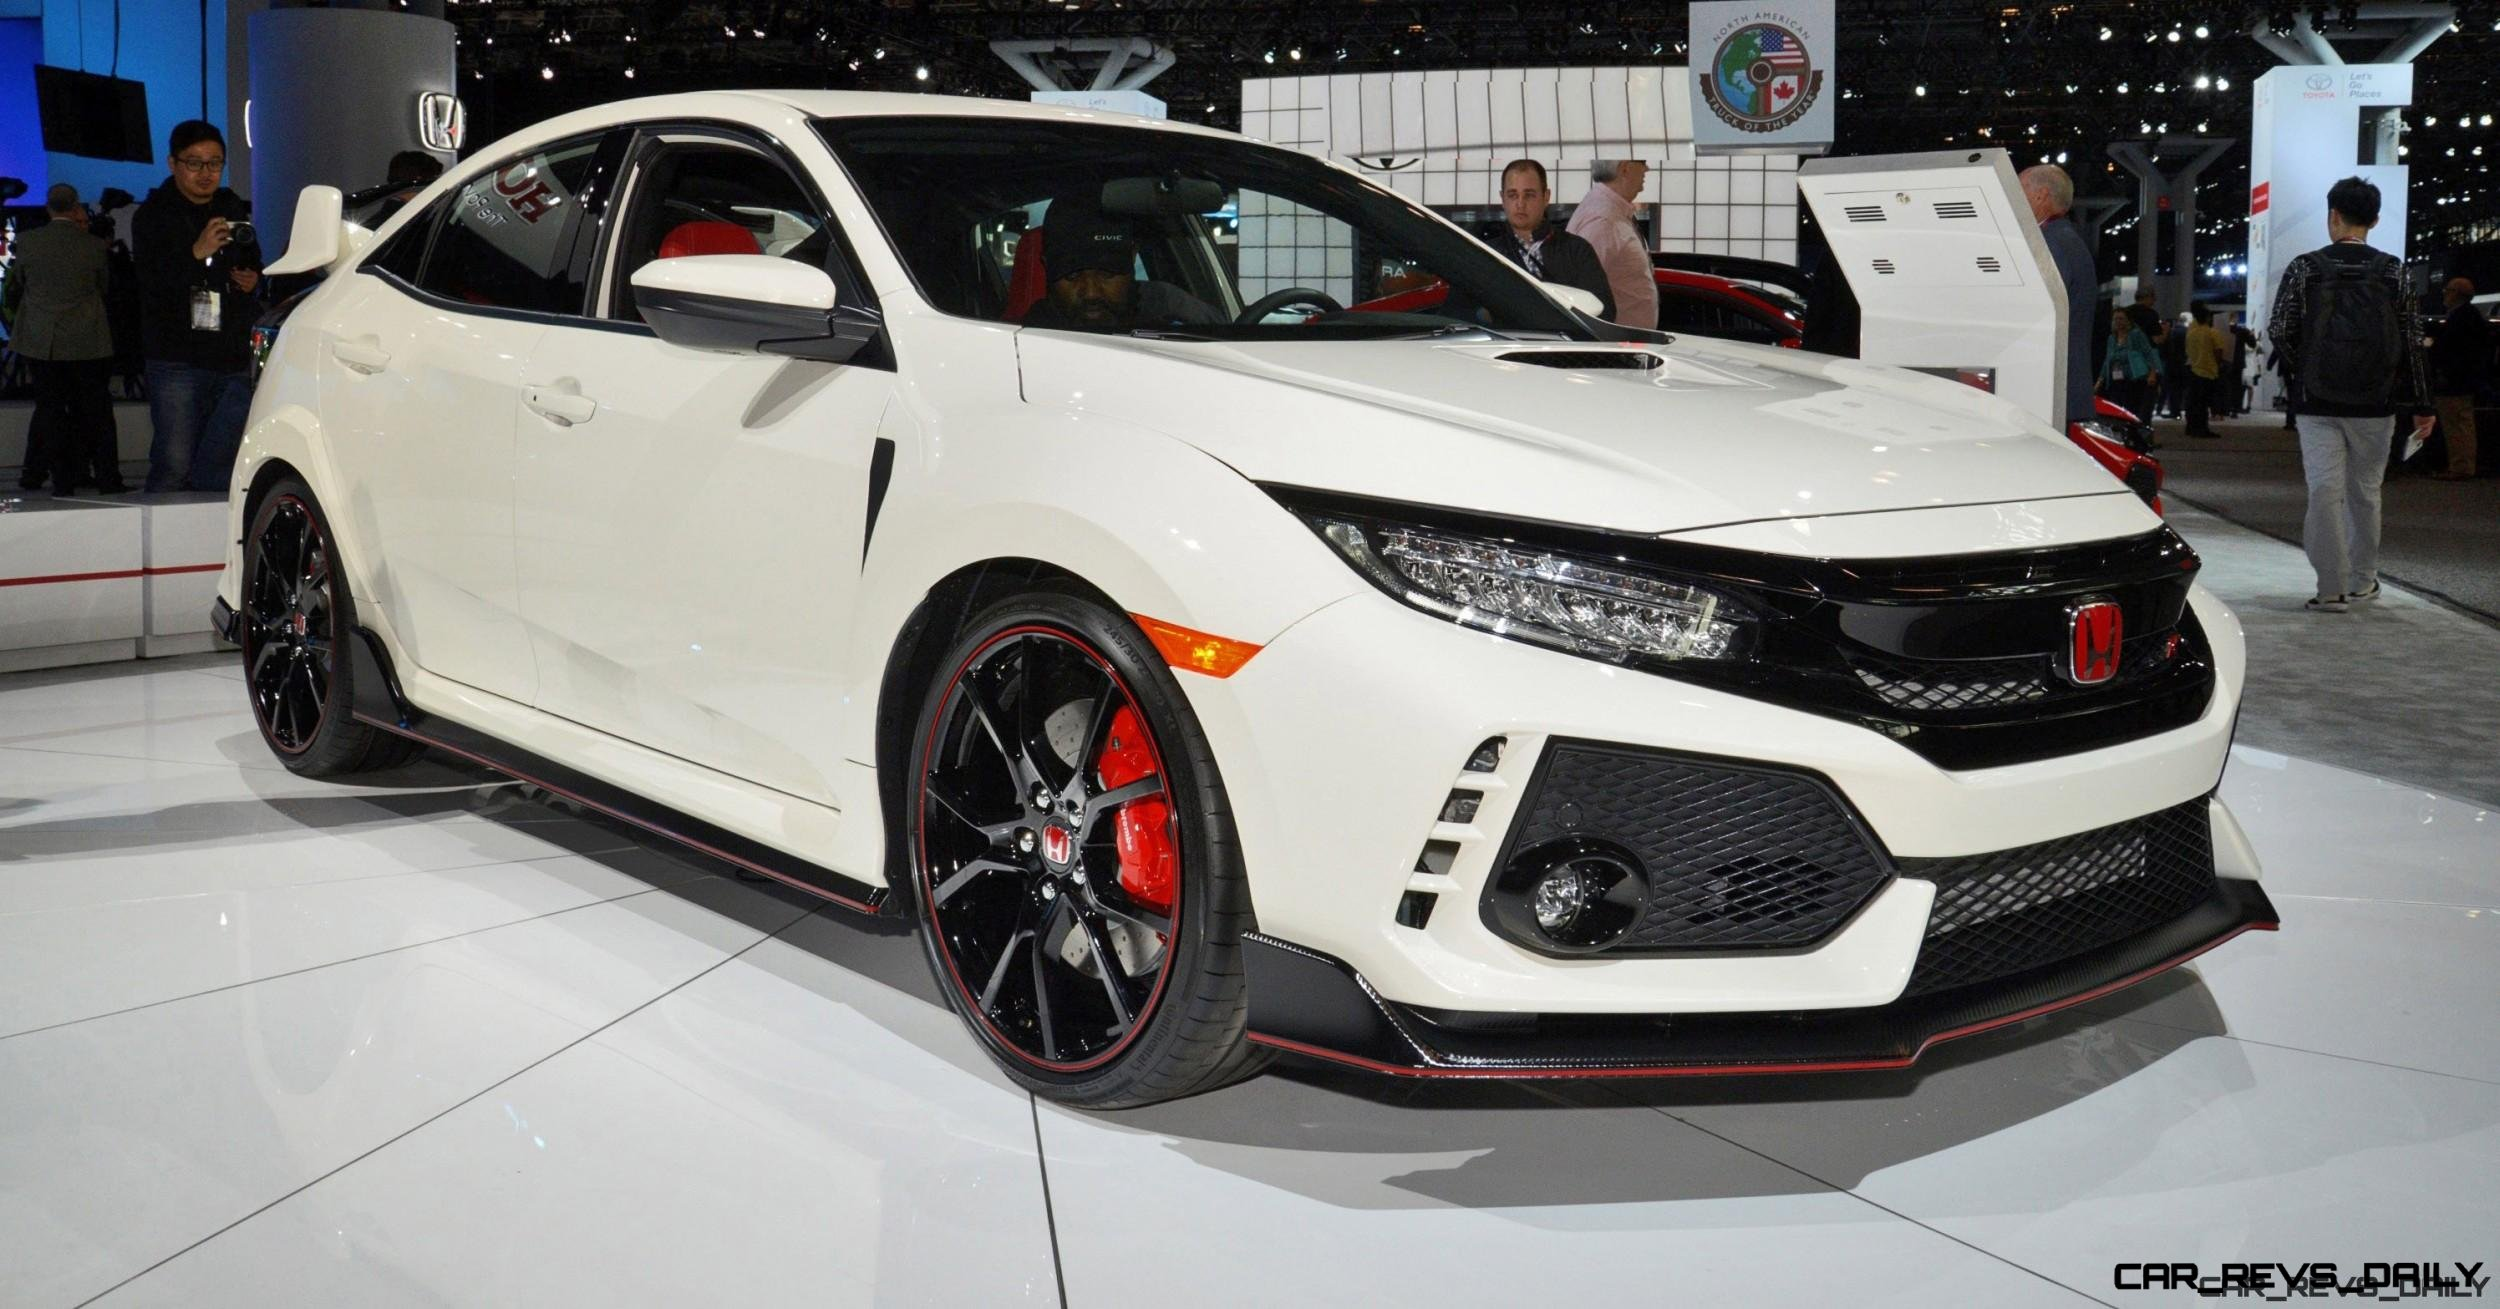 Honda Civic Type R Release Date Usa >> 2017 Honda Civic Type R 20 Photo Usa Debut Gallery W Video